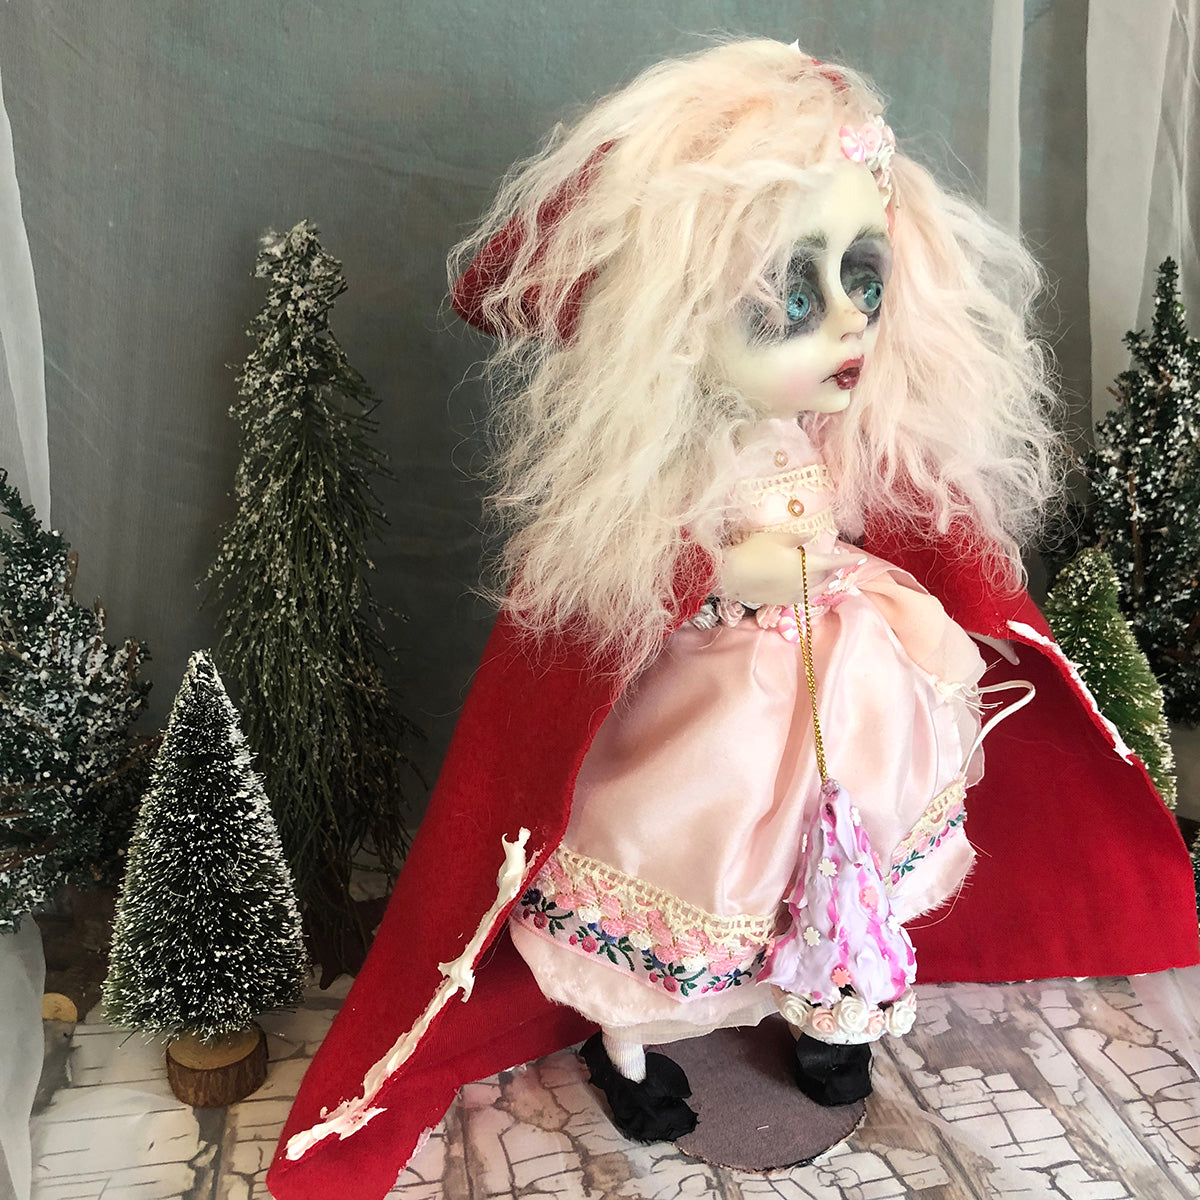 Eliza shabby victorian style Winter OOAK Art Doll LuLusApple